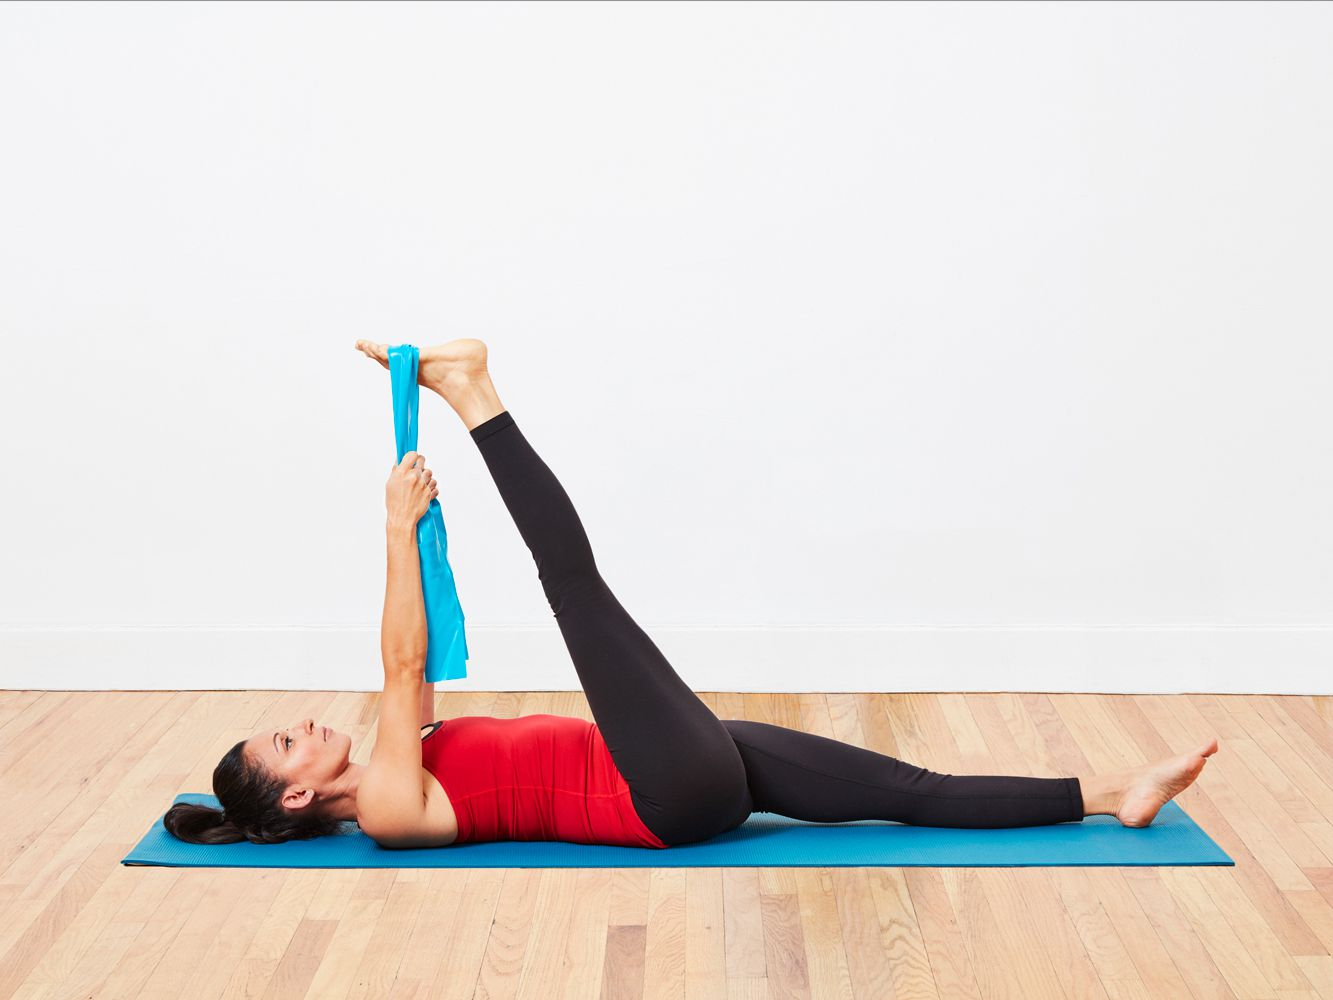 Improve Your Flexibility With These Yoga Poses